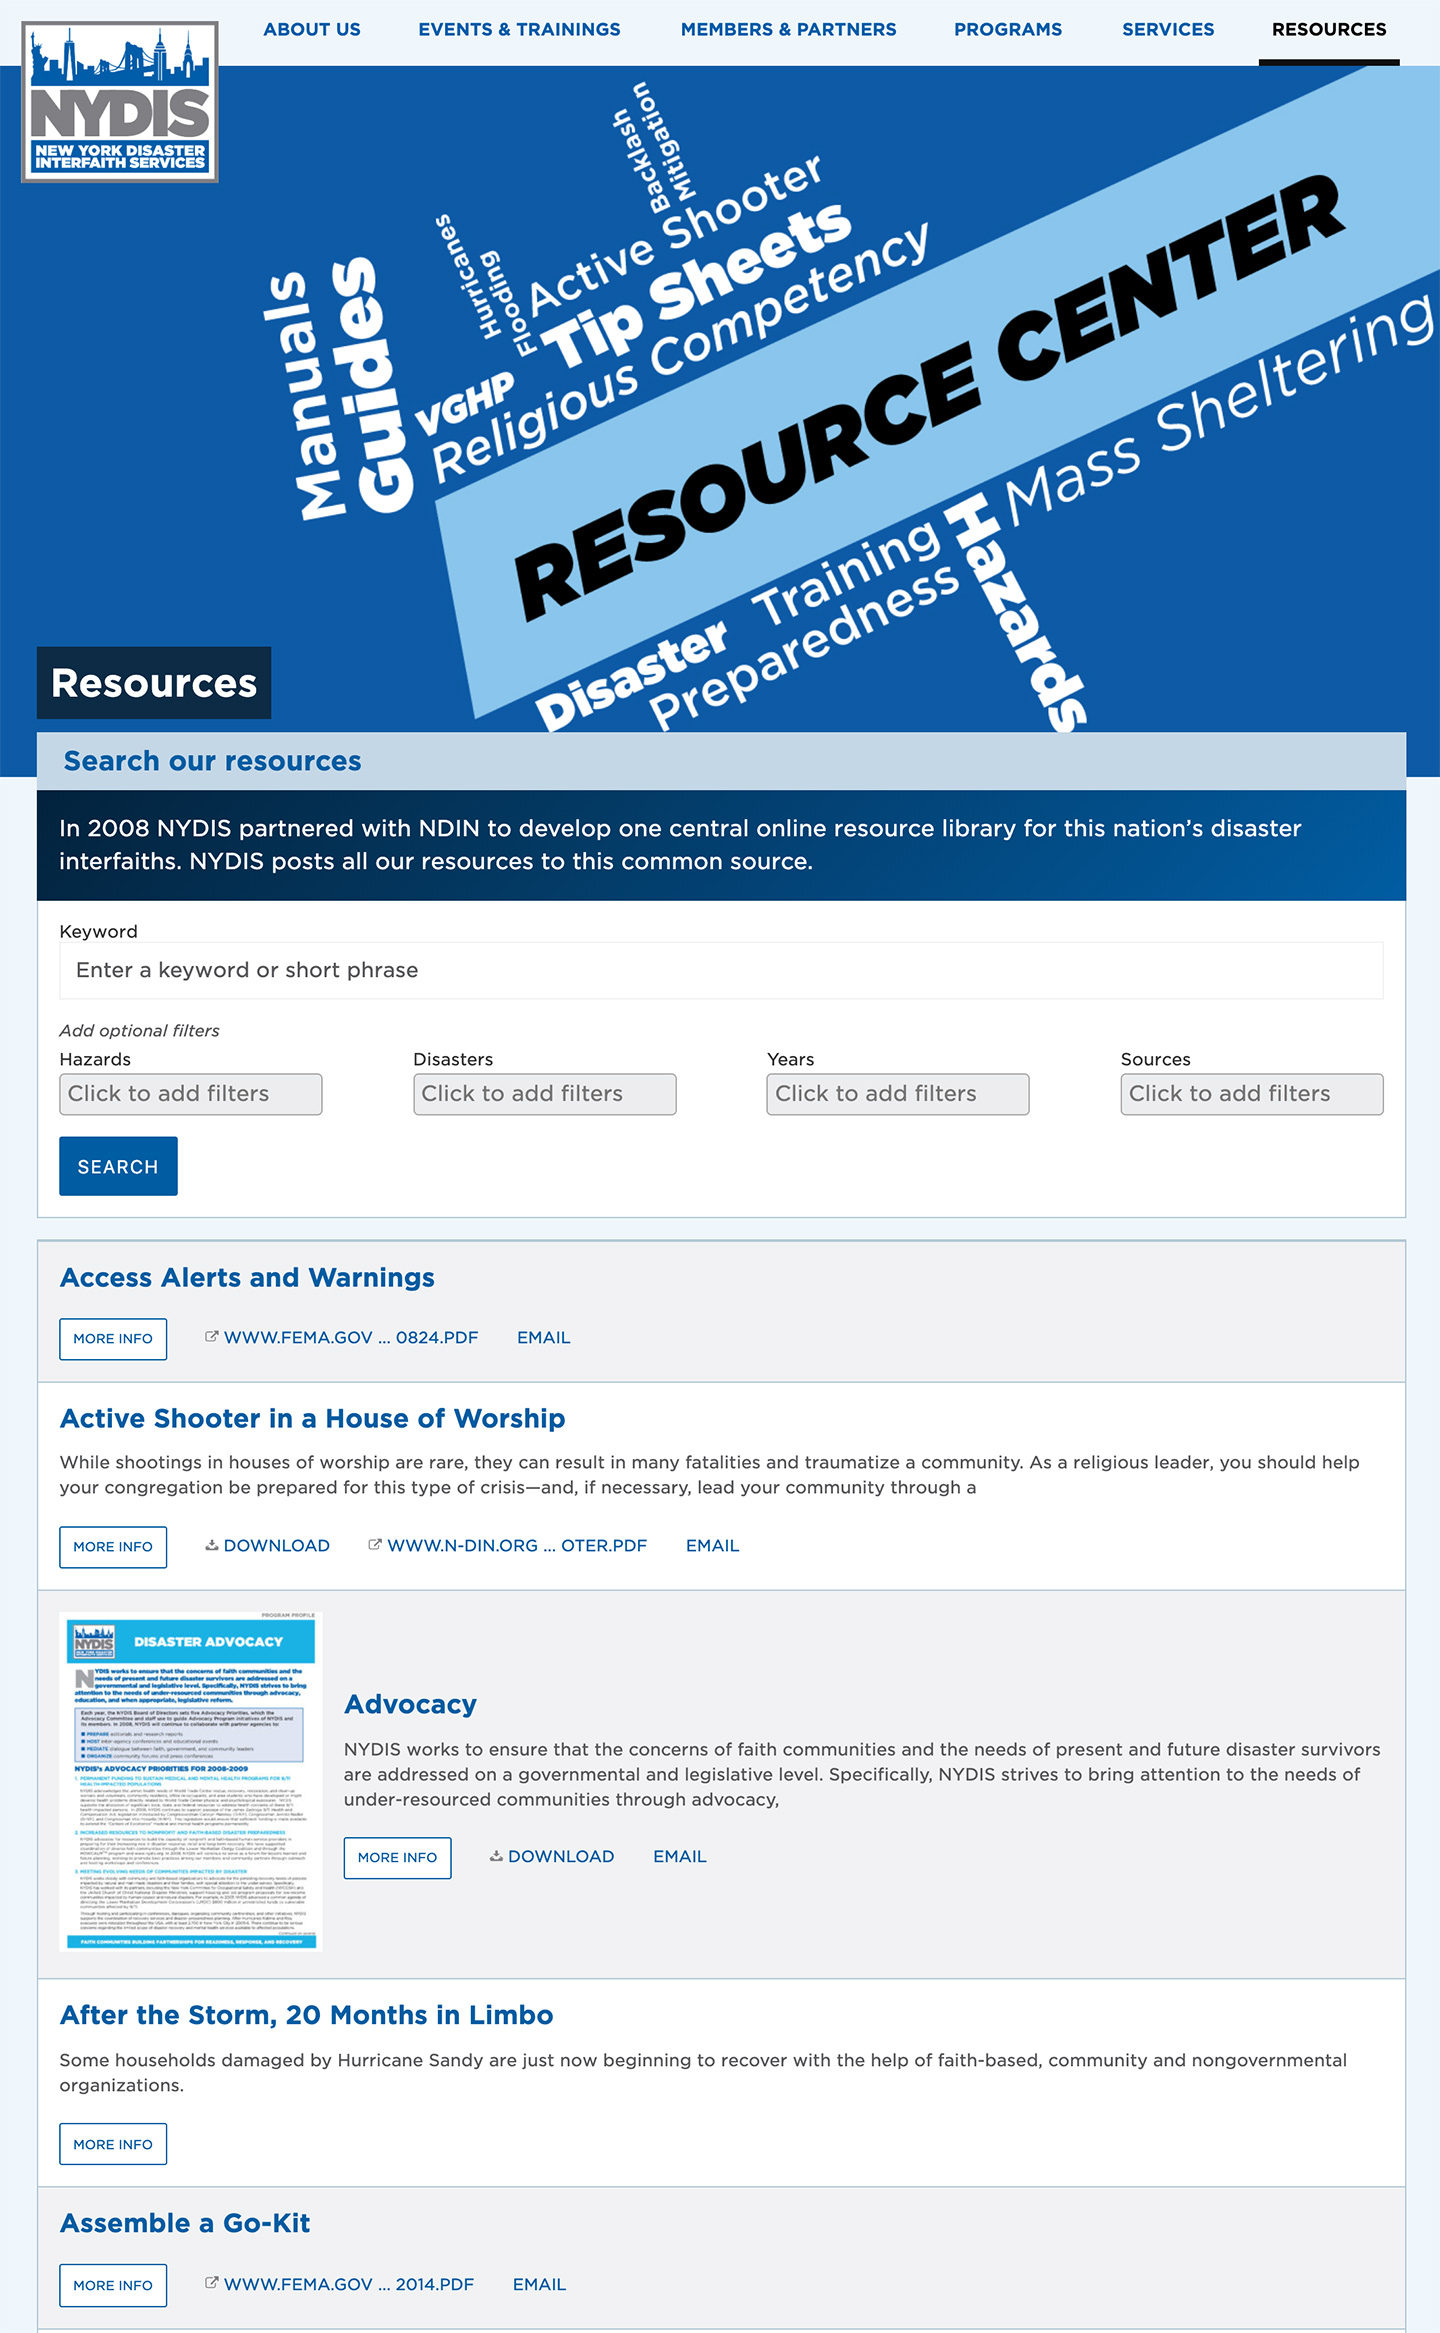 NYDIS: New York Disaster Interfaith Services: Resources with Advanced Filtering